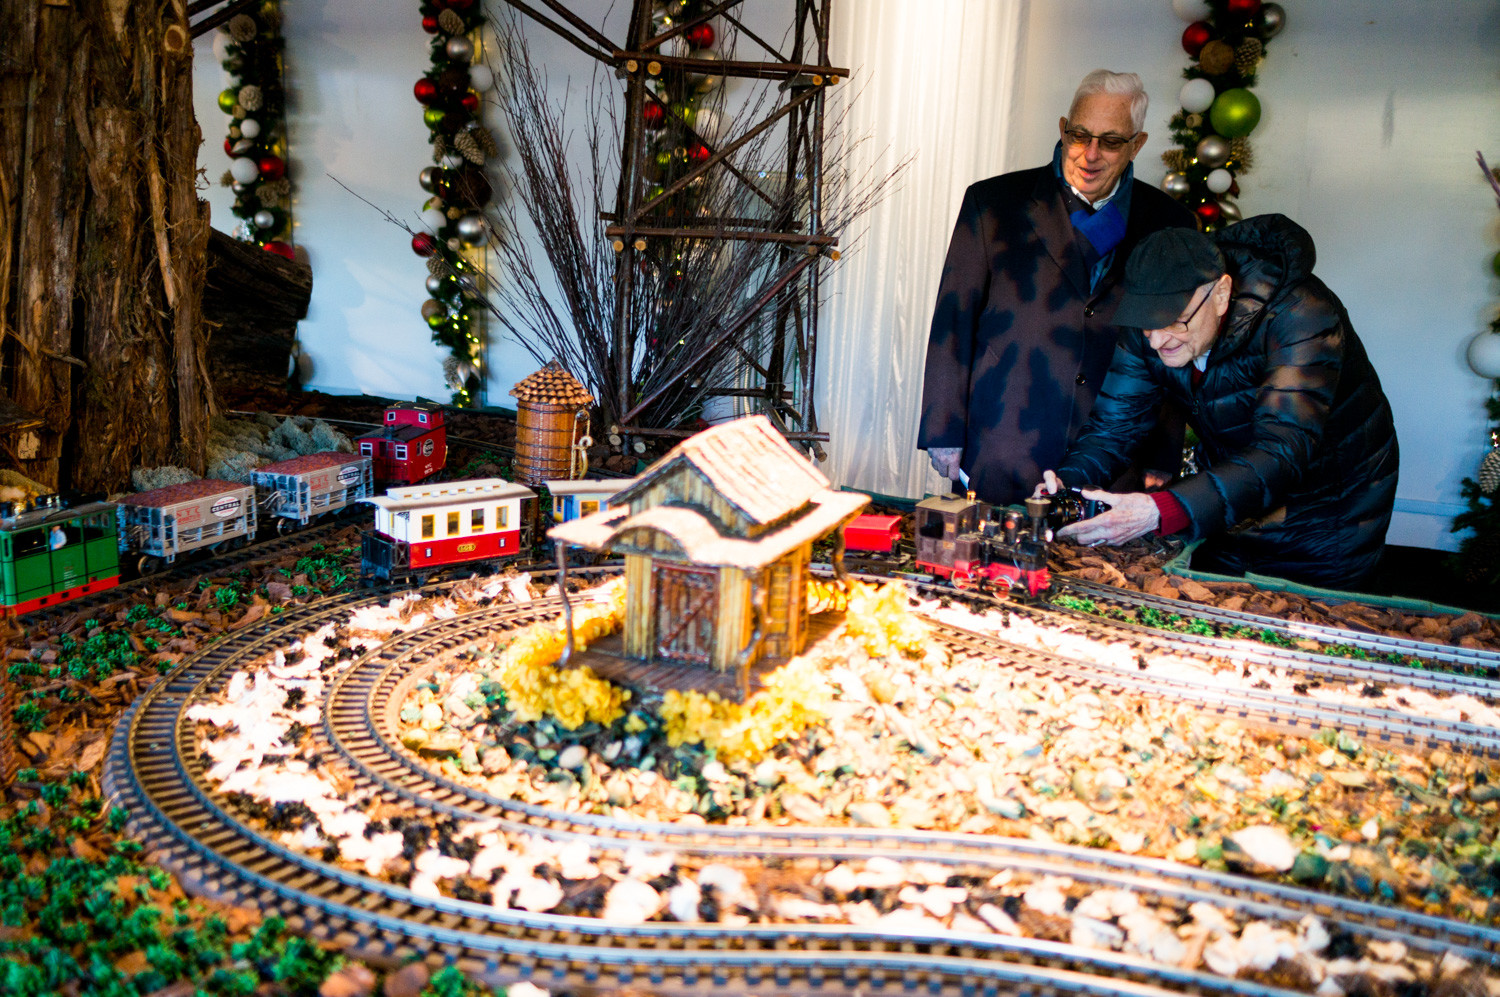 Patrons wait for the opportune moment to take a picture of a train in the first room of the Holiday Train Show at the New York Botanical Garden.